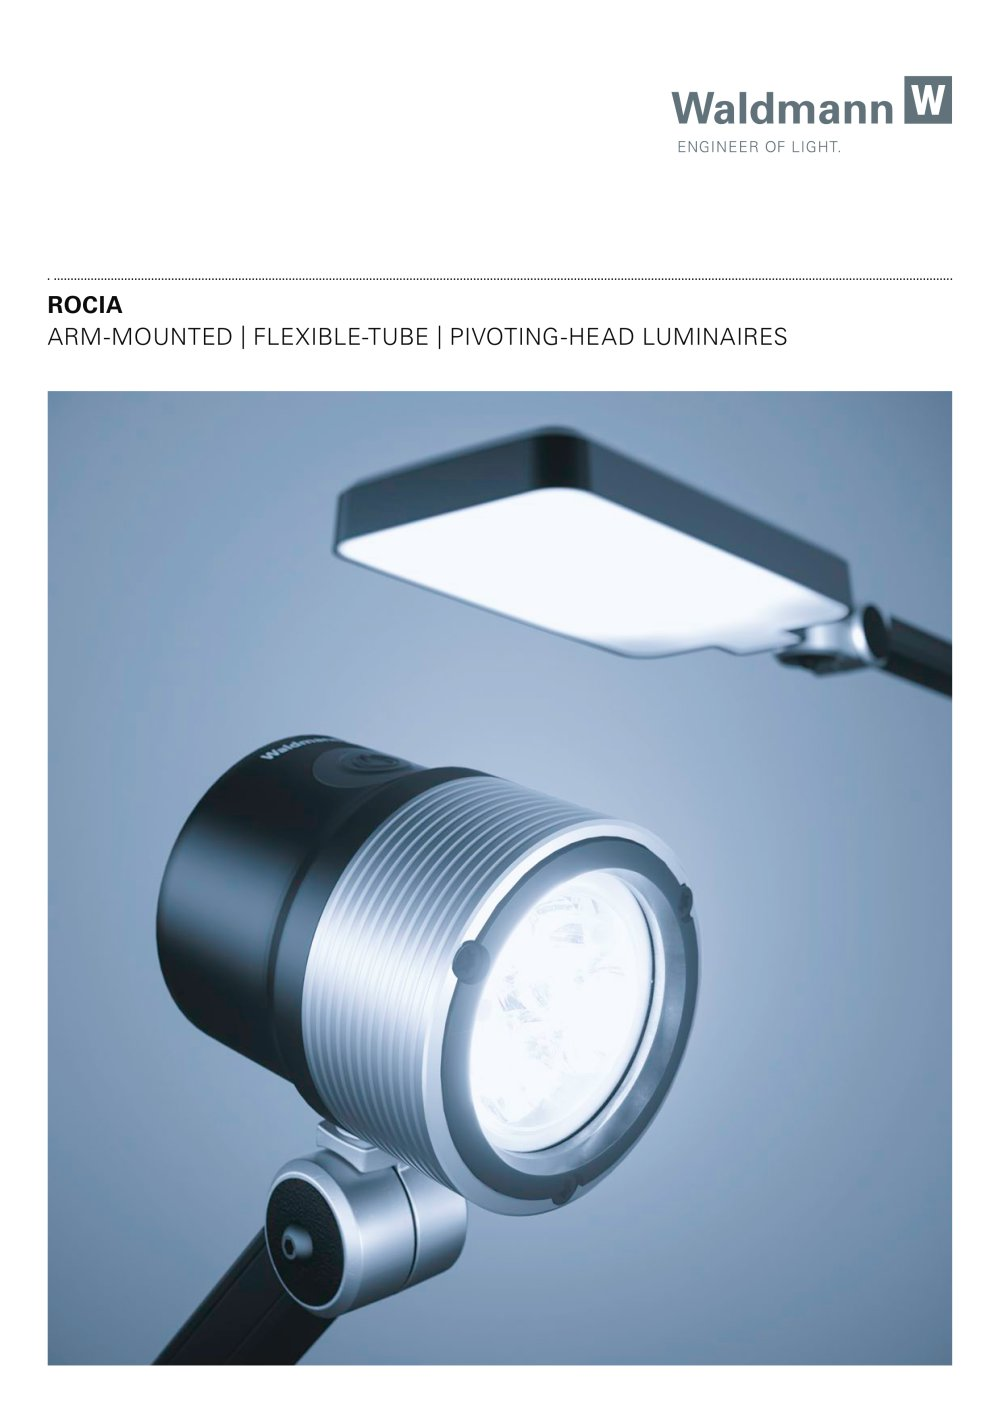 Flexible Rohre Arm Mounted Flexible Tube Pivoting Head Luminaires Rocia